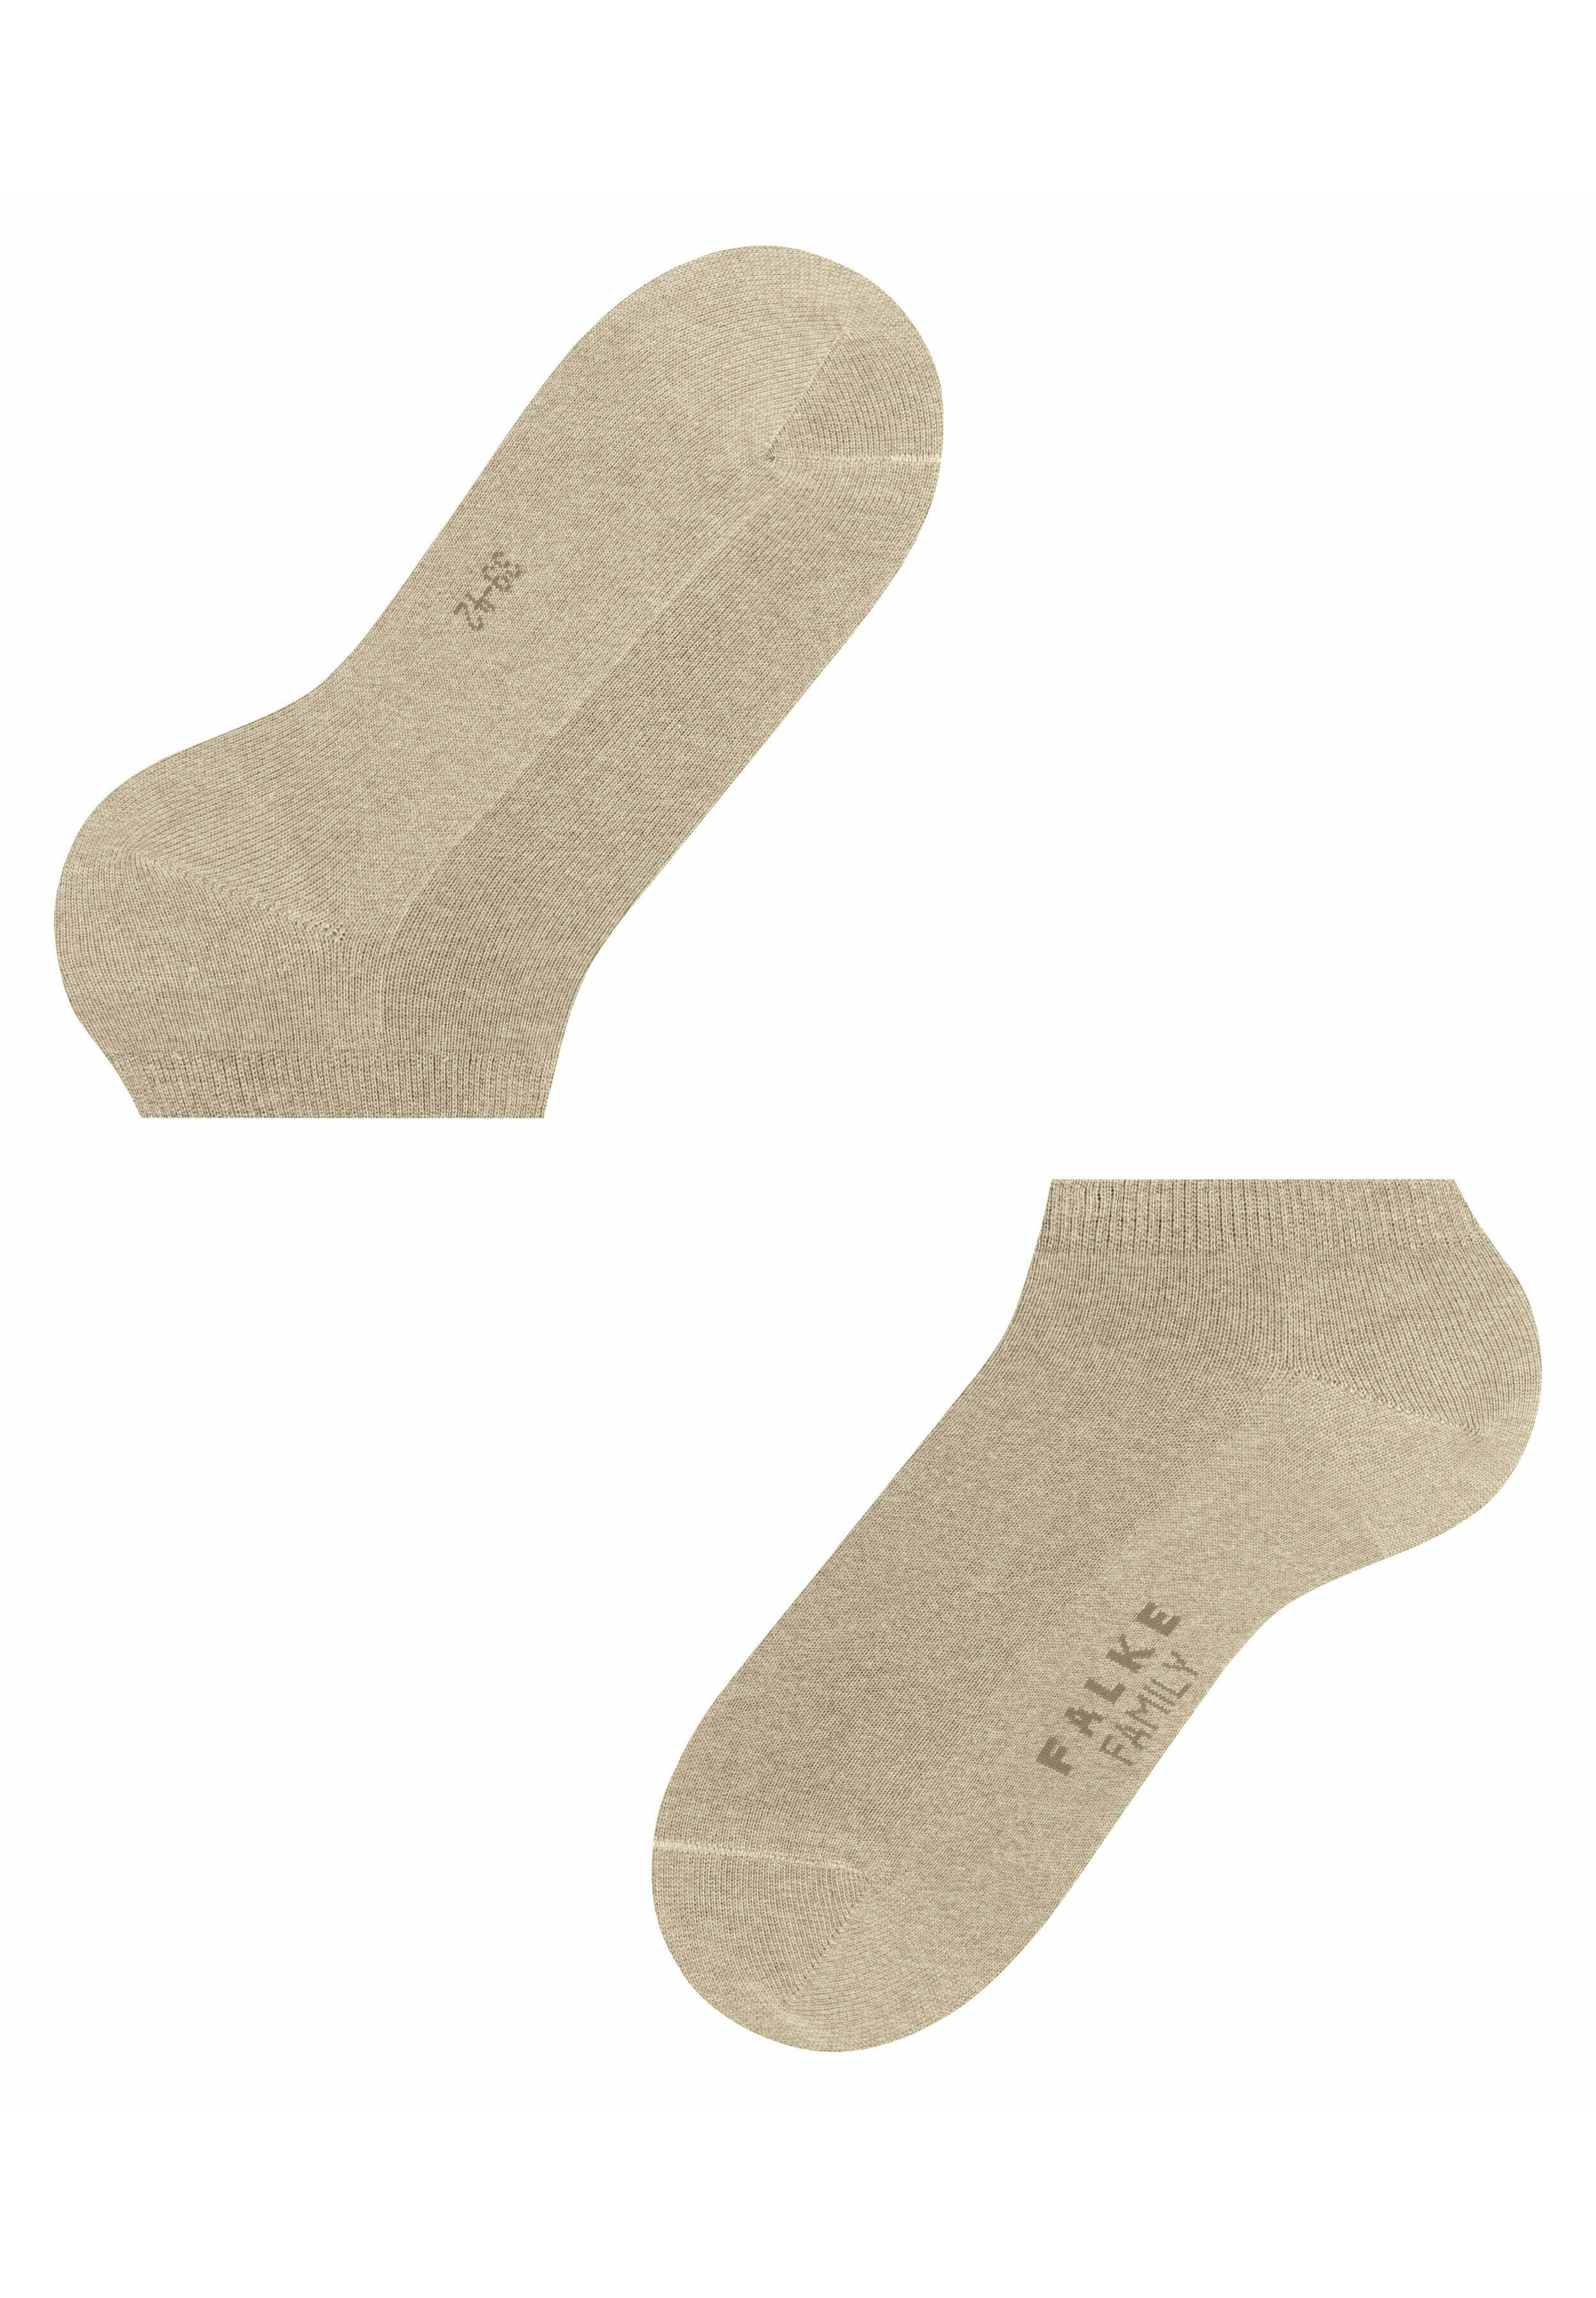 Homme FAMILY - Chaussettes - sand mel.